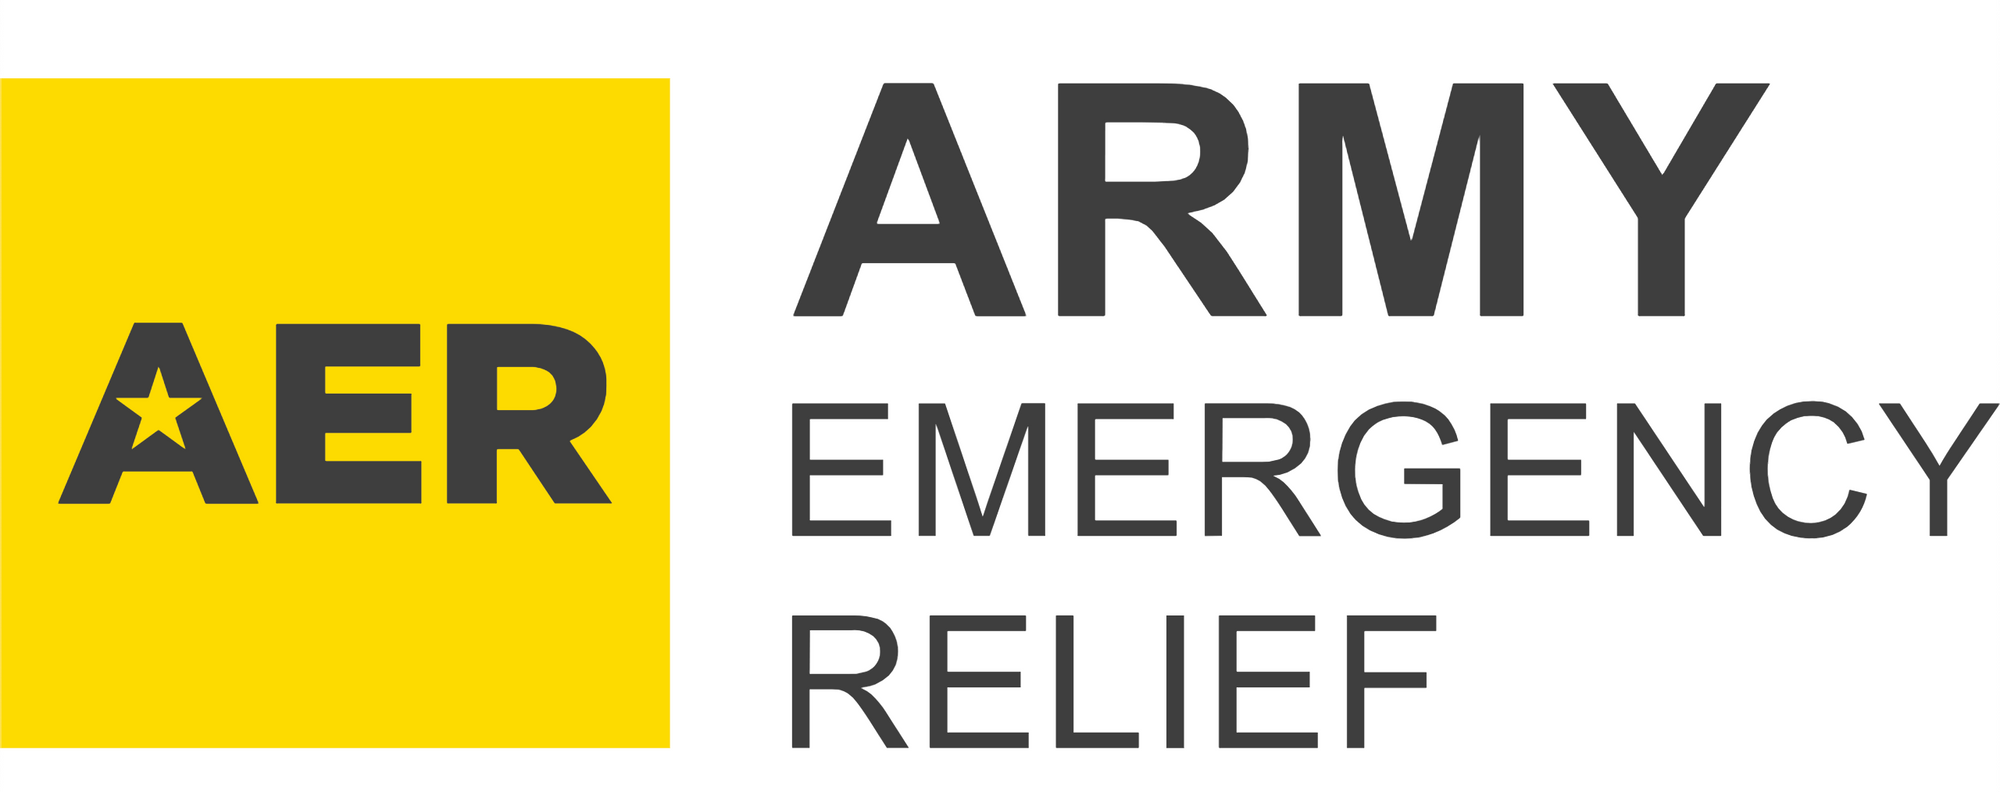 Army Emergency Relief Fund Receives 2nd Donation From Run Fierce Community!💪